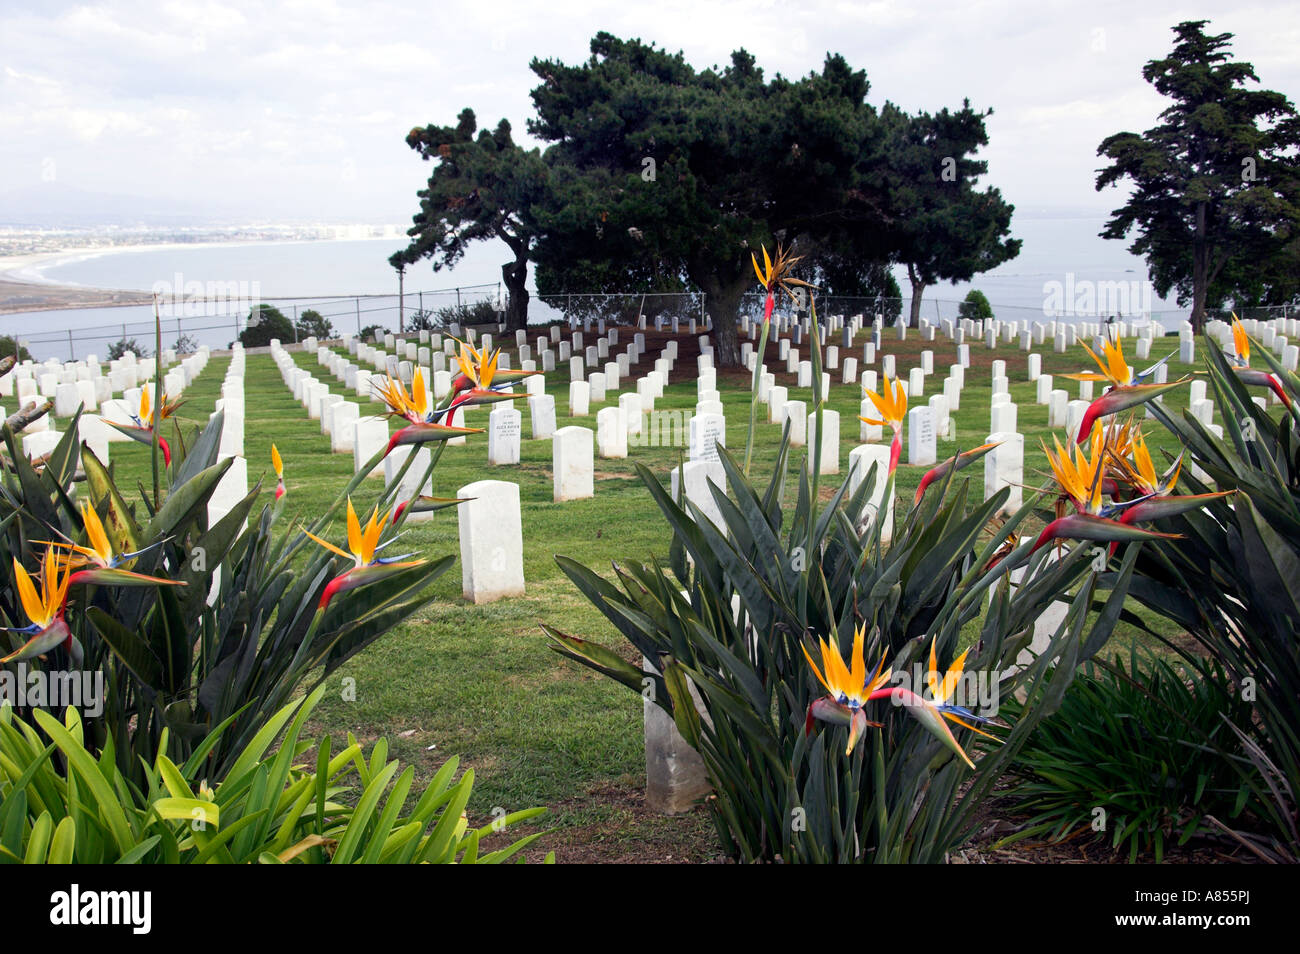 The bird of paradise flower with rows of tombstones in Fort Rosencrans National Cemetery near San Diego, California, - Stock Image